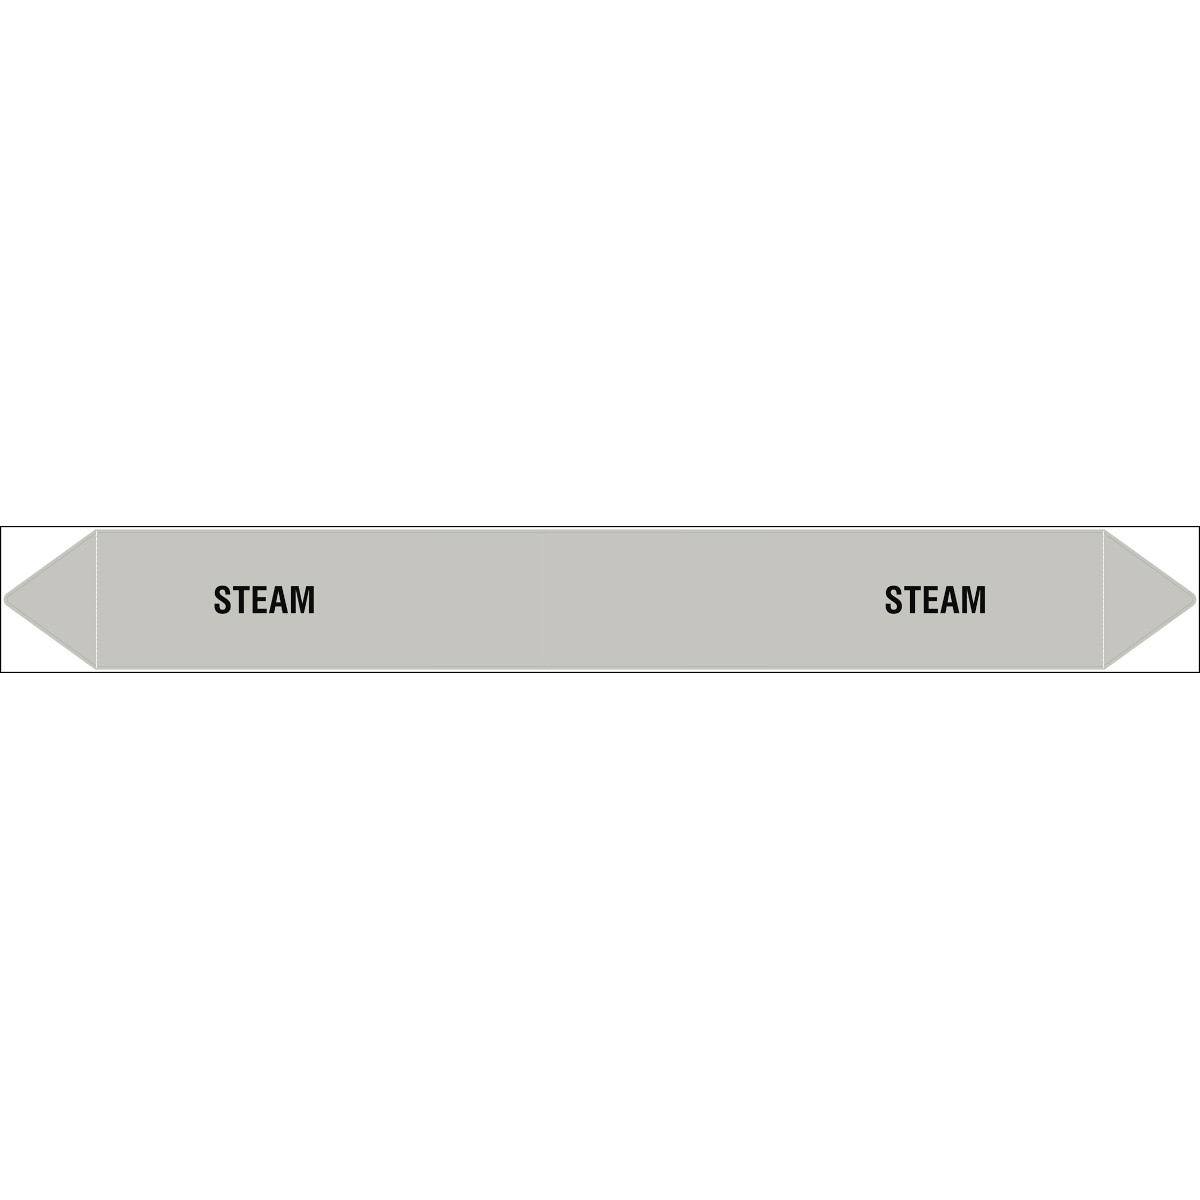 Steam - Individual Pipe Markers